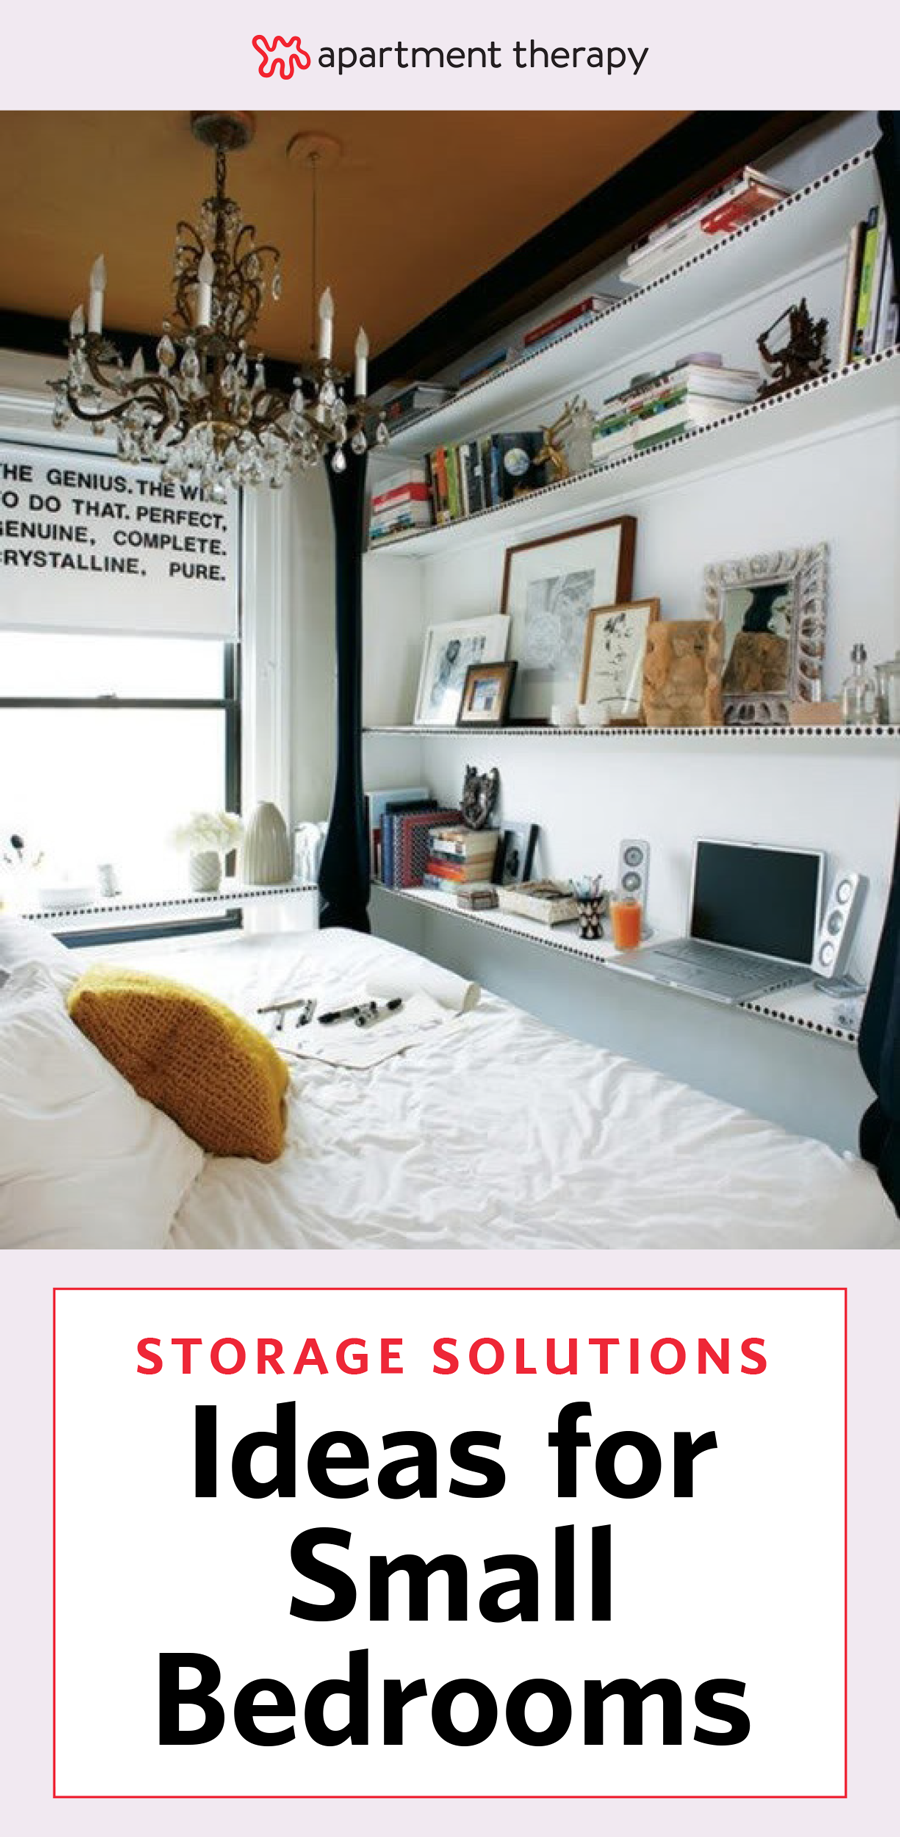 8 Storage Solutions To Maximize Your Hidden Bedroom Space For The Home Bedroom Small Flat